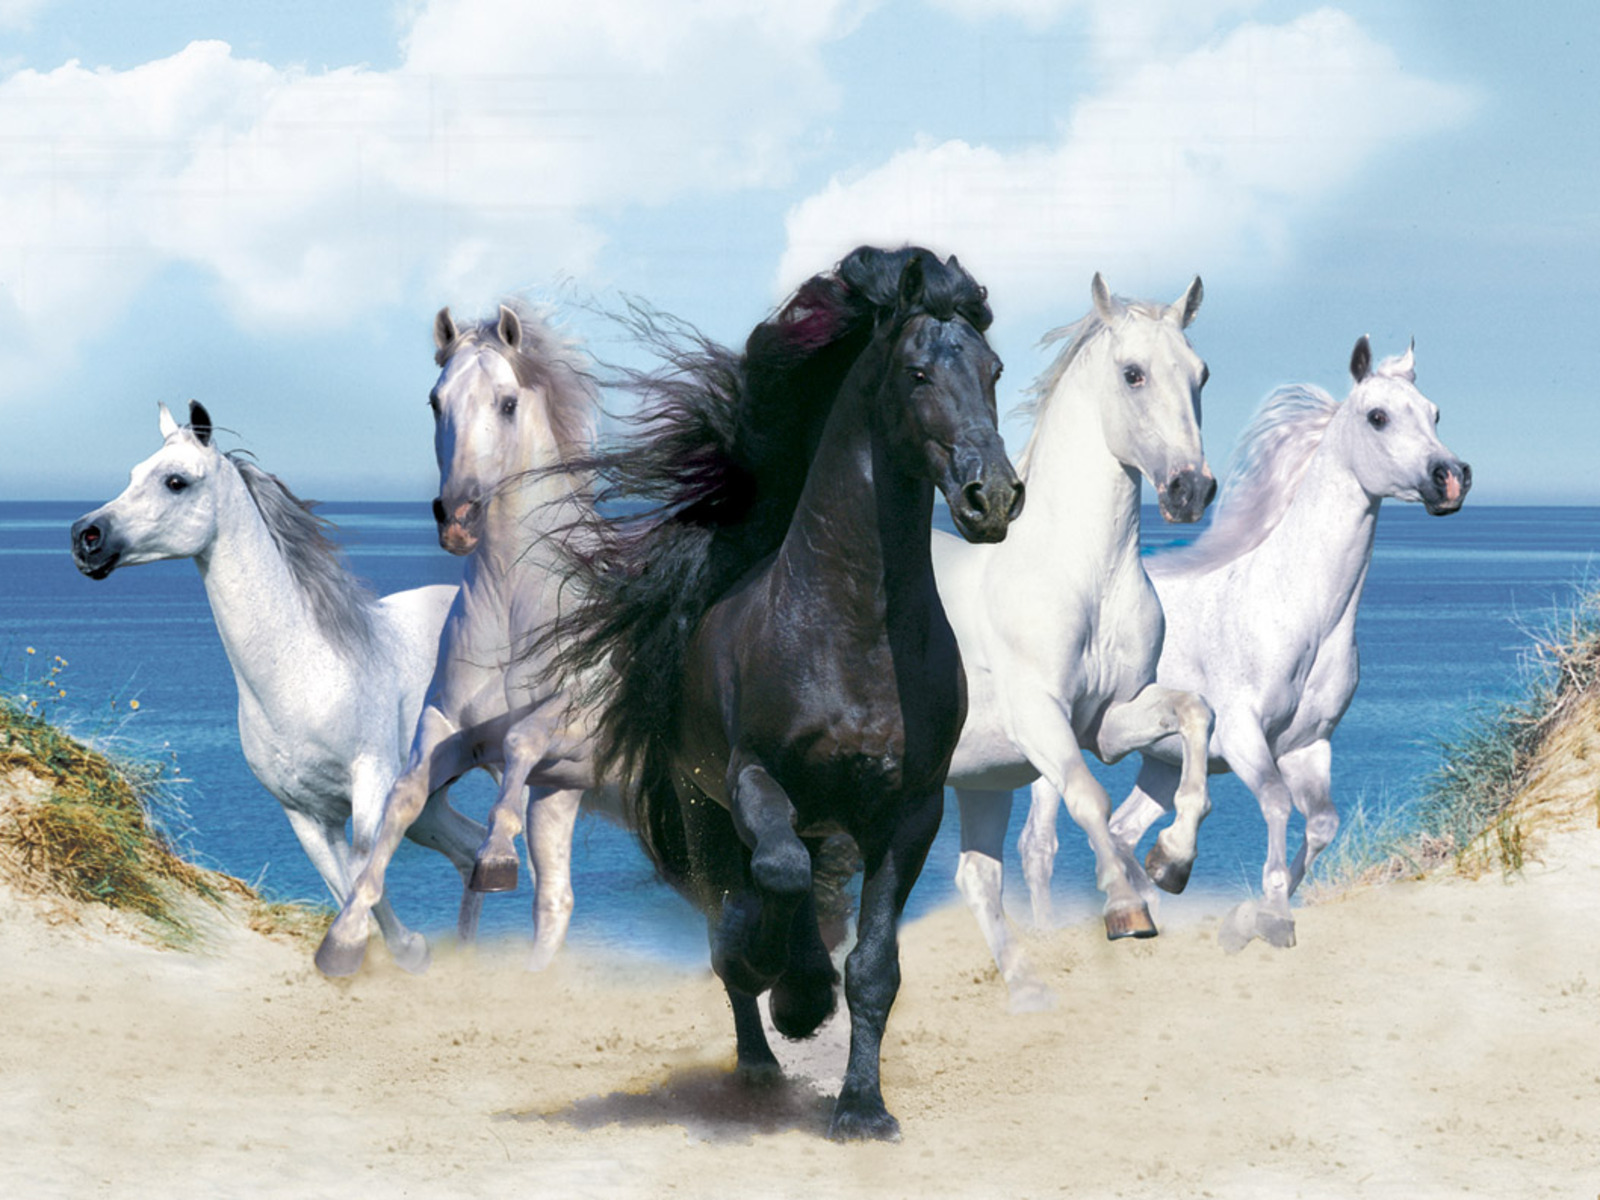 http://3.bp.blogspot.com/-JY6oLSj8yi8/TcGVSOssXjI/AAAAAAAAAWA/DL_VIfUfnKE/s1600/Animals+Wallpapers+Fantasy+Beautiful+Horses.jpg